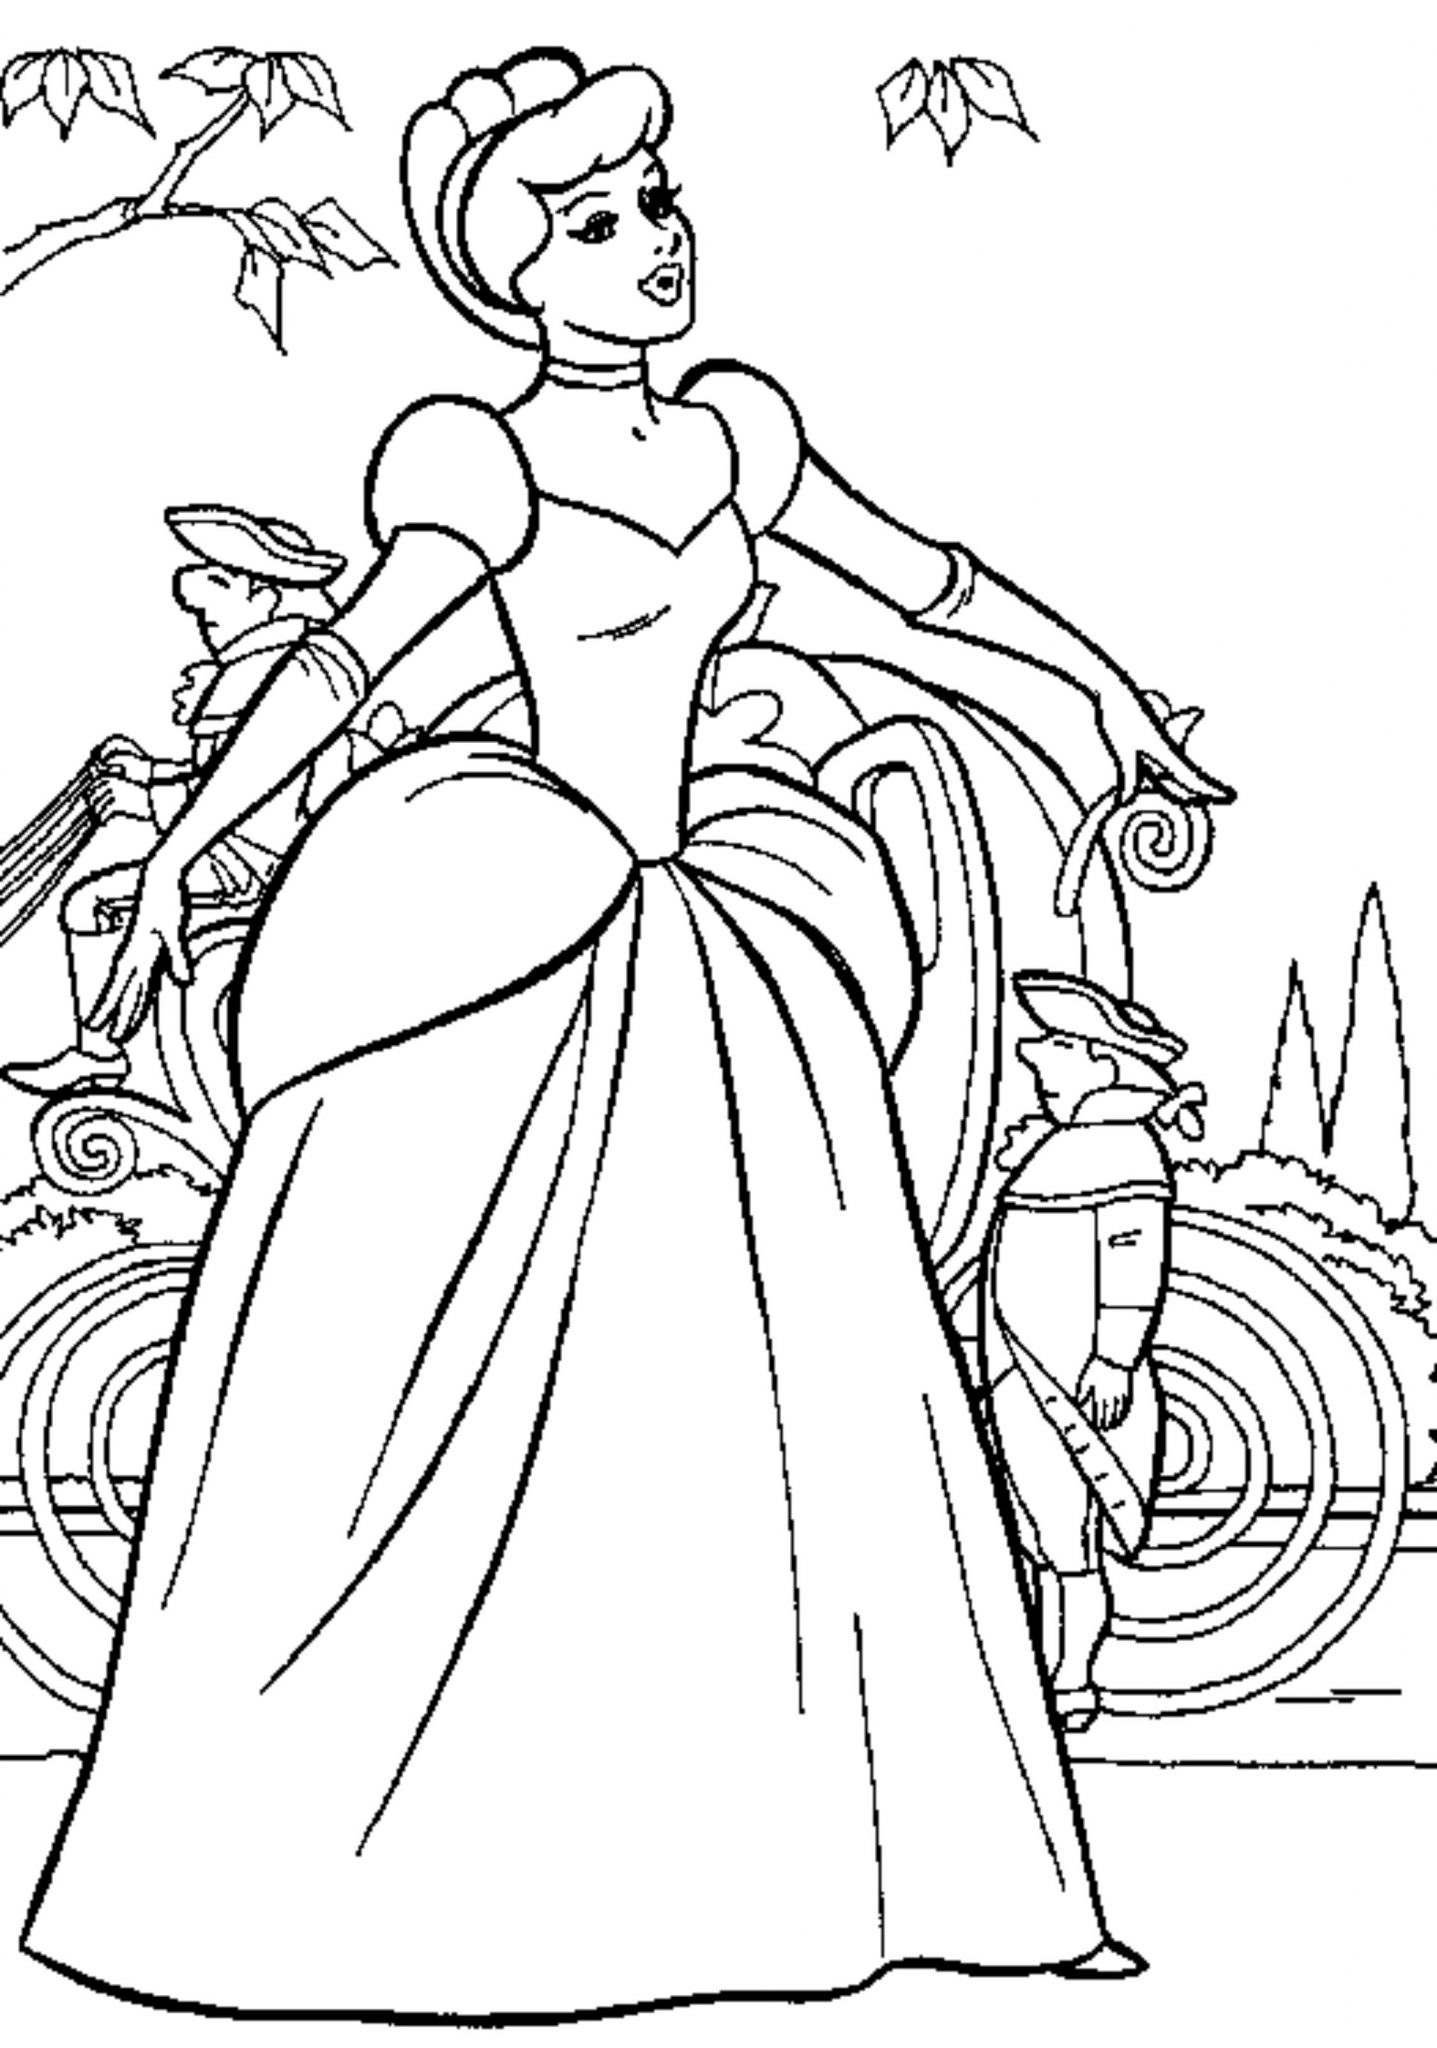 coloring pictures disney princesses print download princess coloring pages support the coloring princesses pictures disney